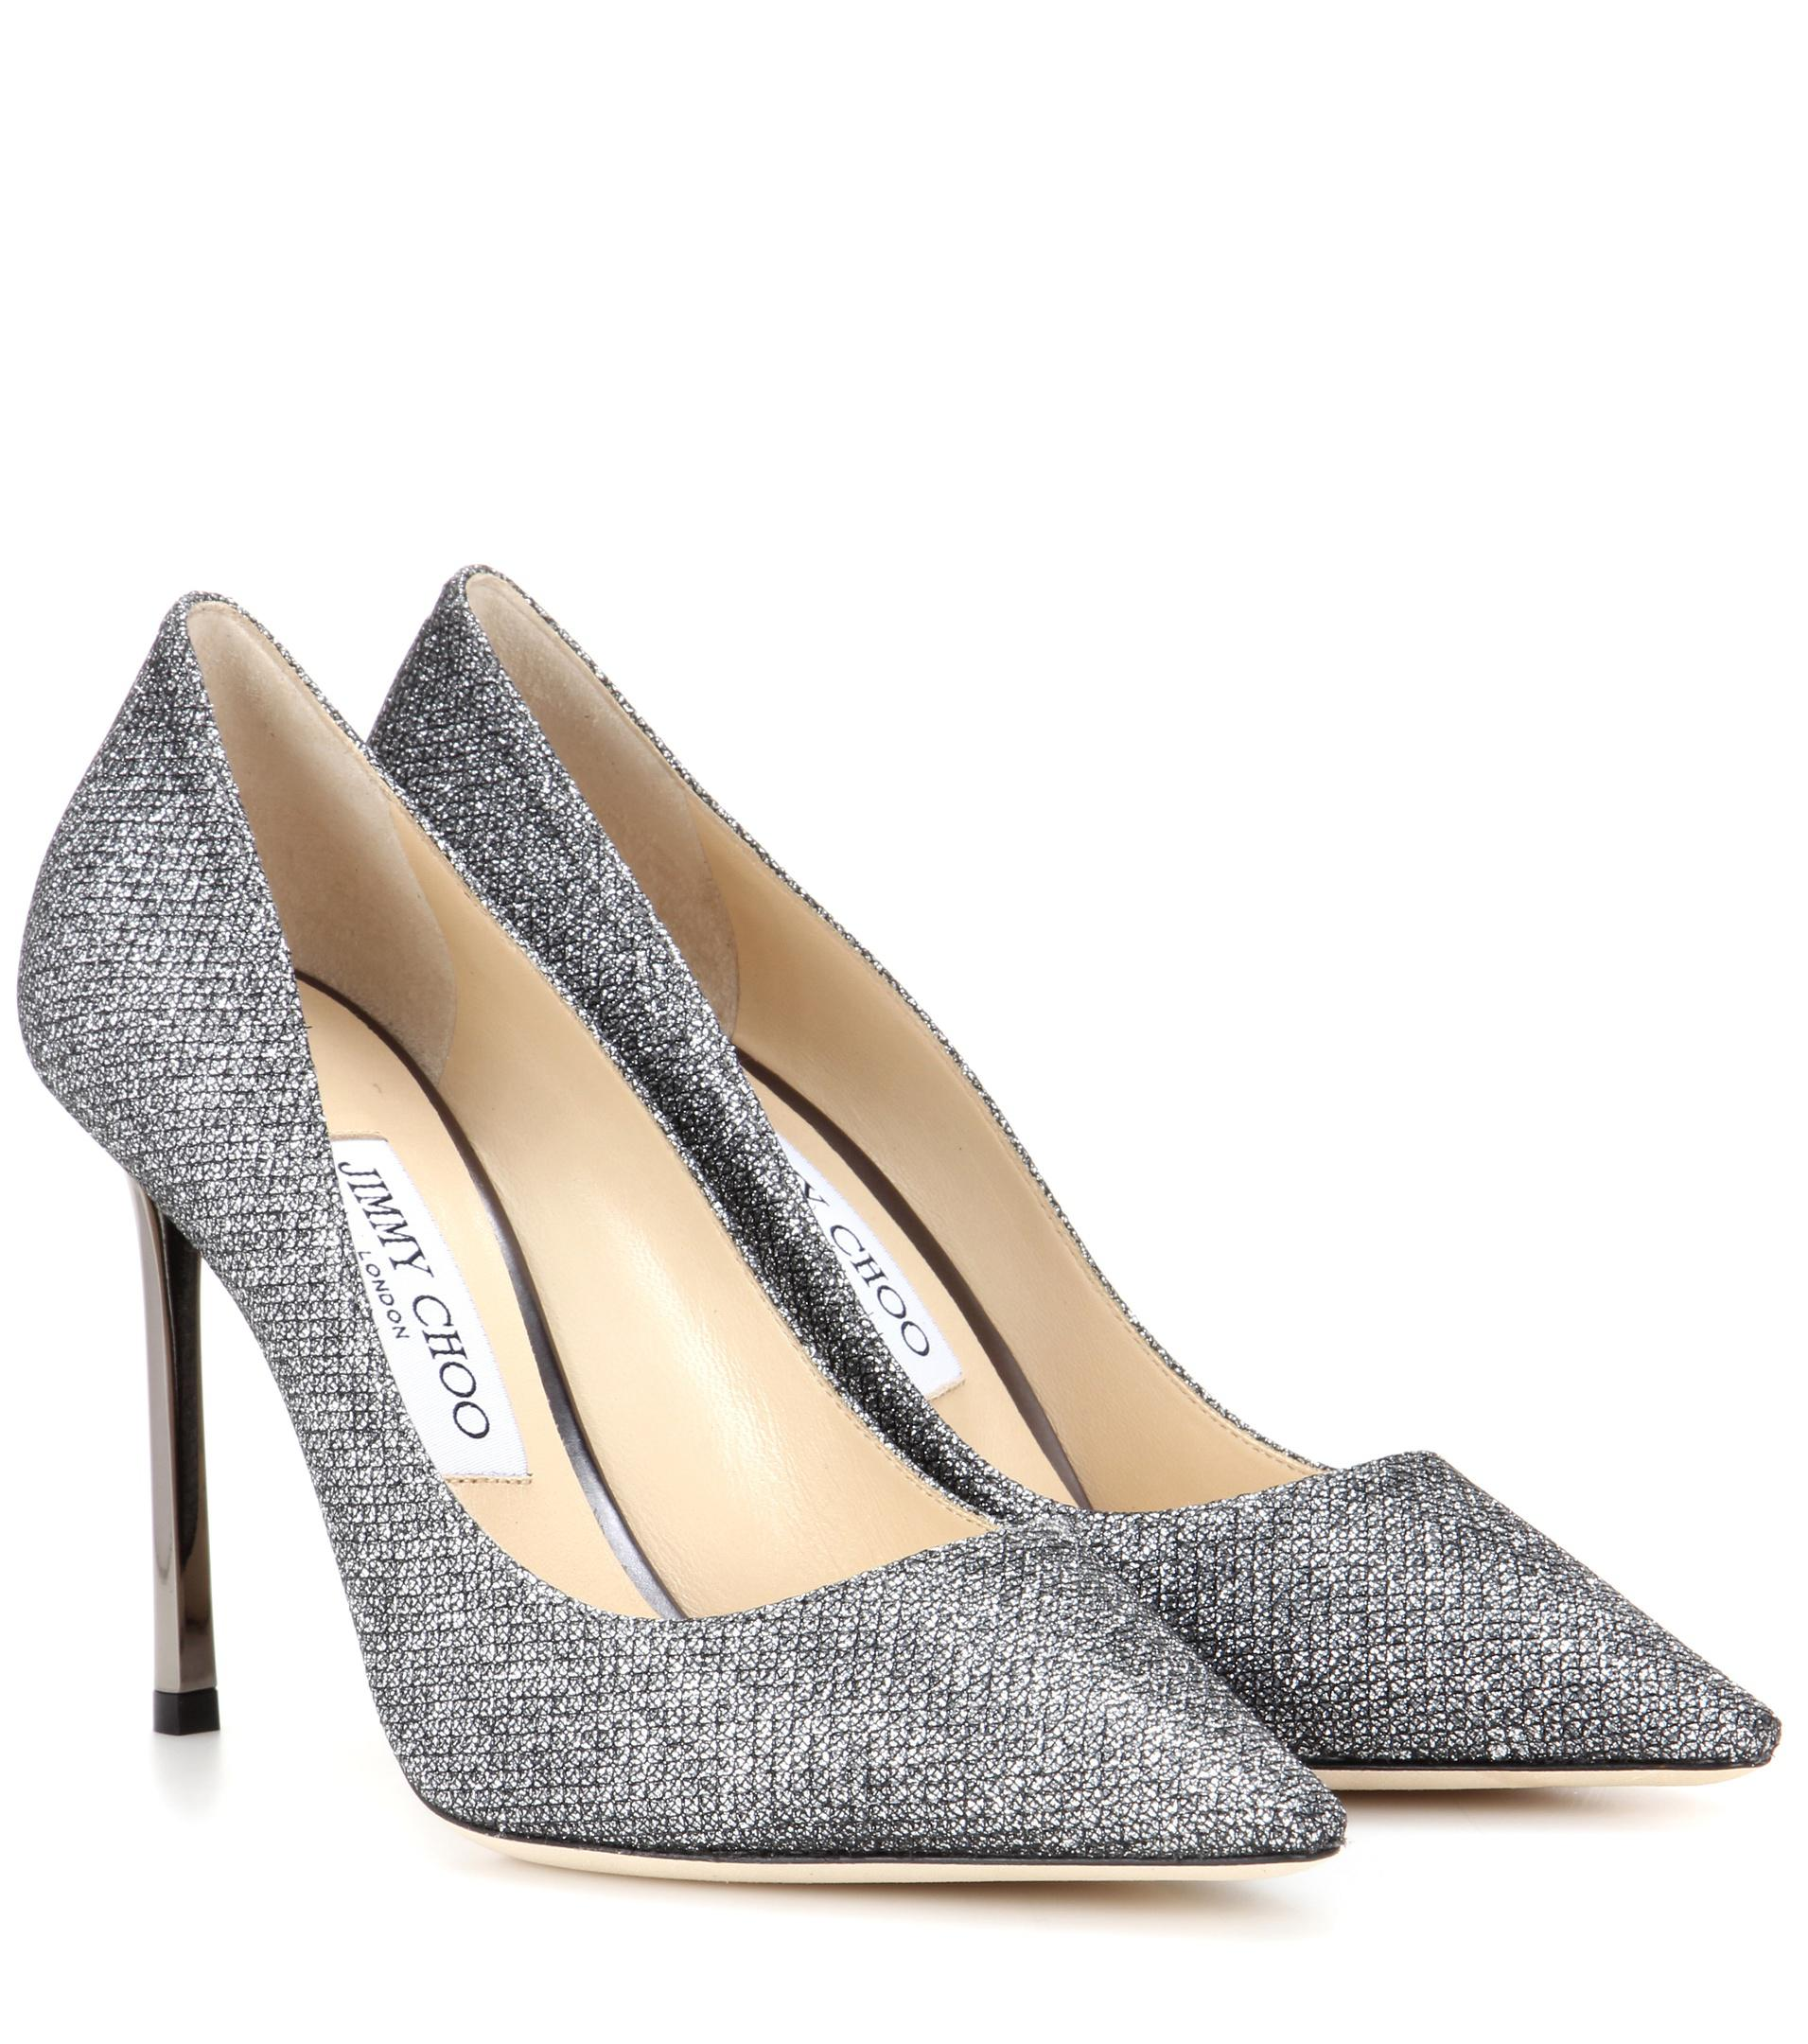 a02d23248b37 Jimmy Choo Romy 100 Glitter Pumps in Gray - Save 37.26315789473684 ...